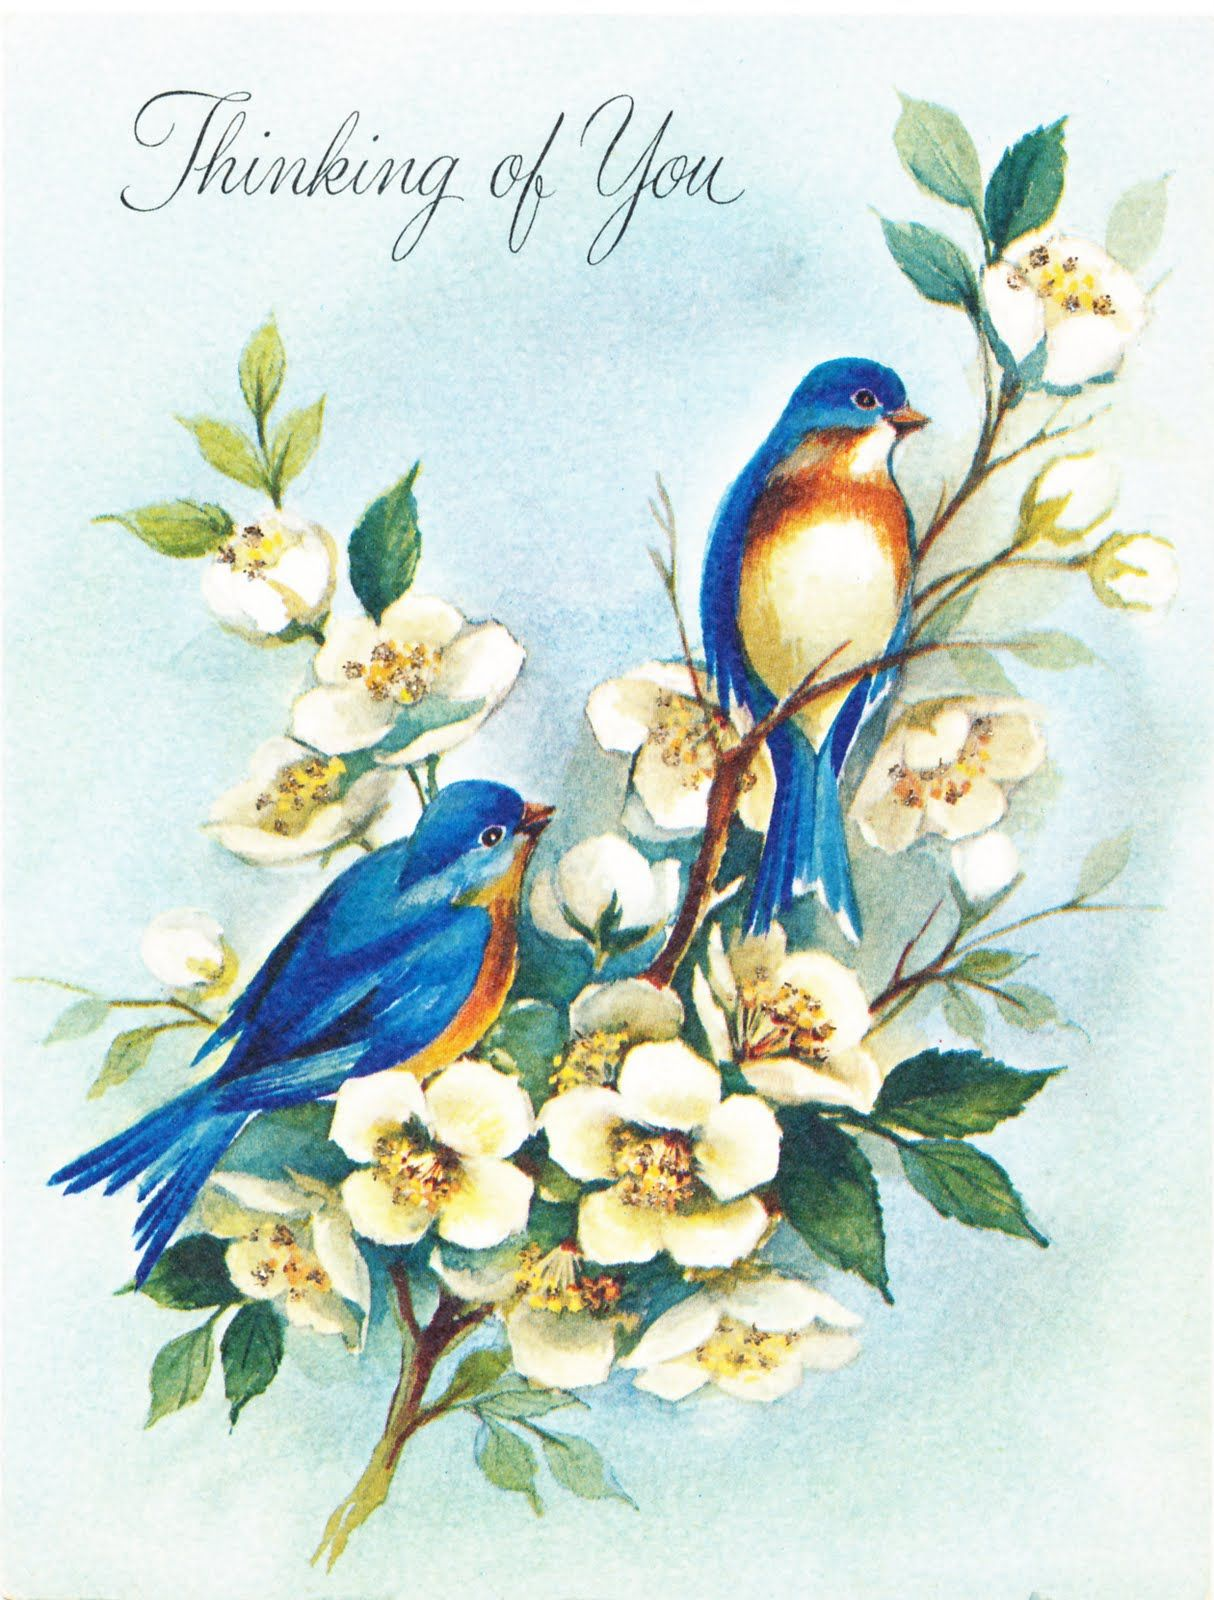 Bird images from vintage greeting cards free vintage bird graphics bird images from vintage greeting cards m4hsunfo Image collections